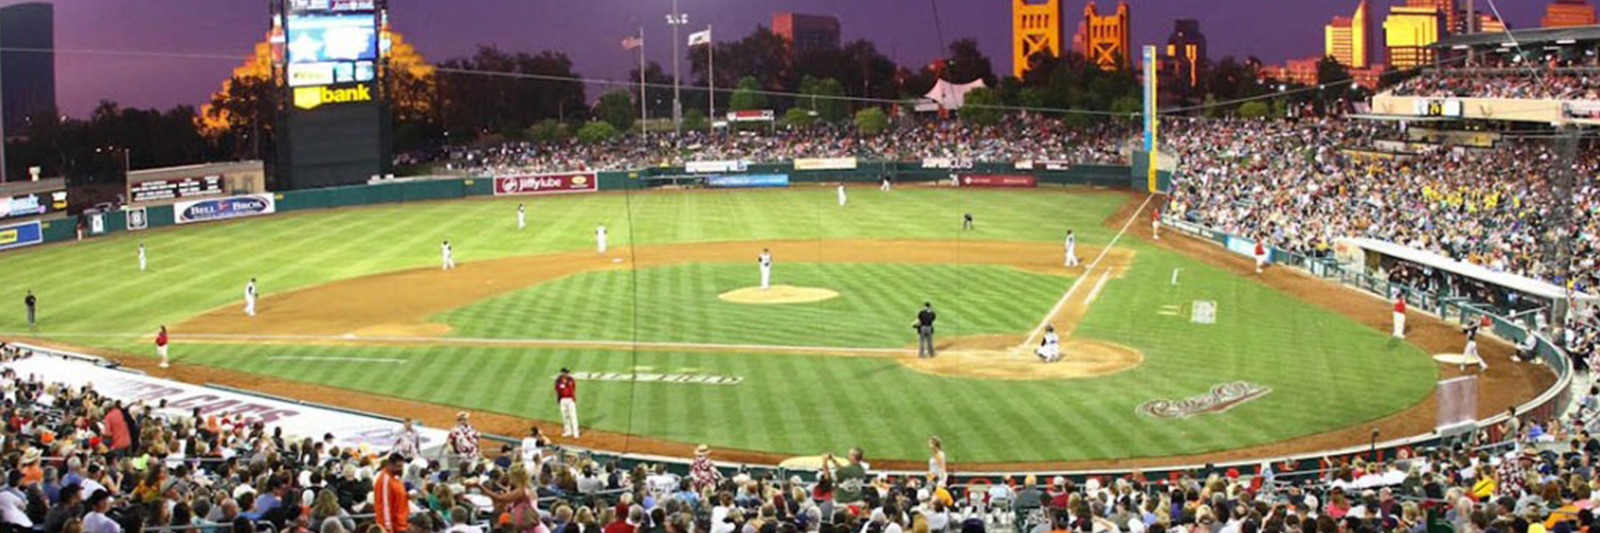 rivercats-stadium.jpg